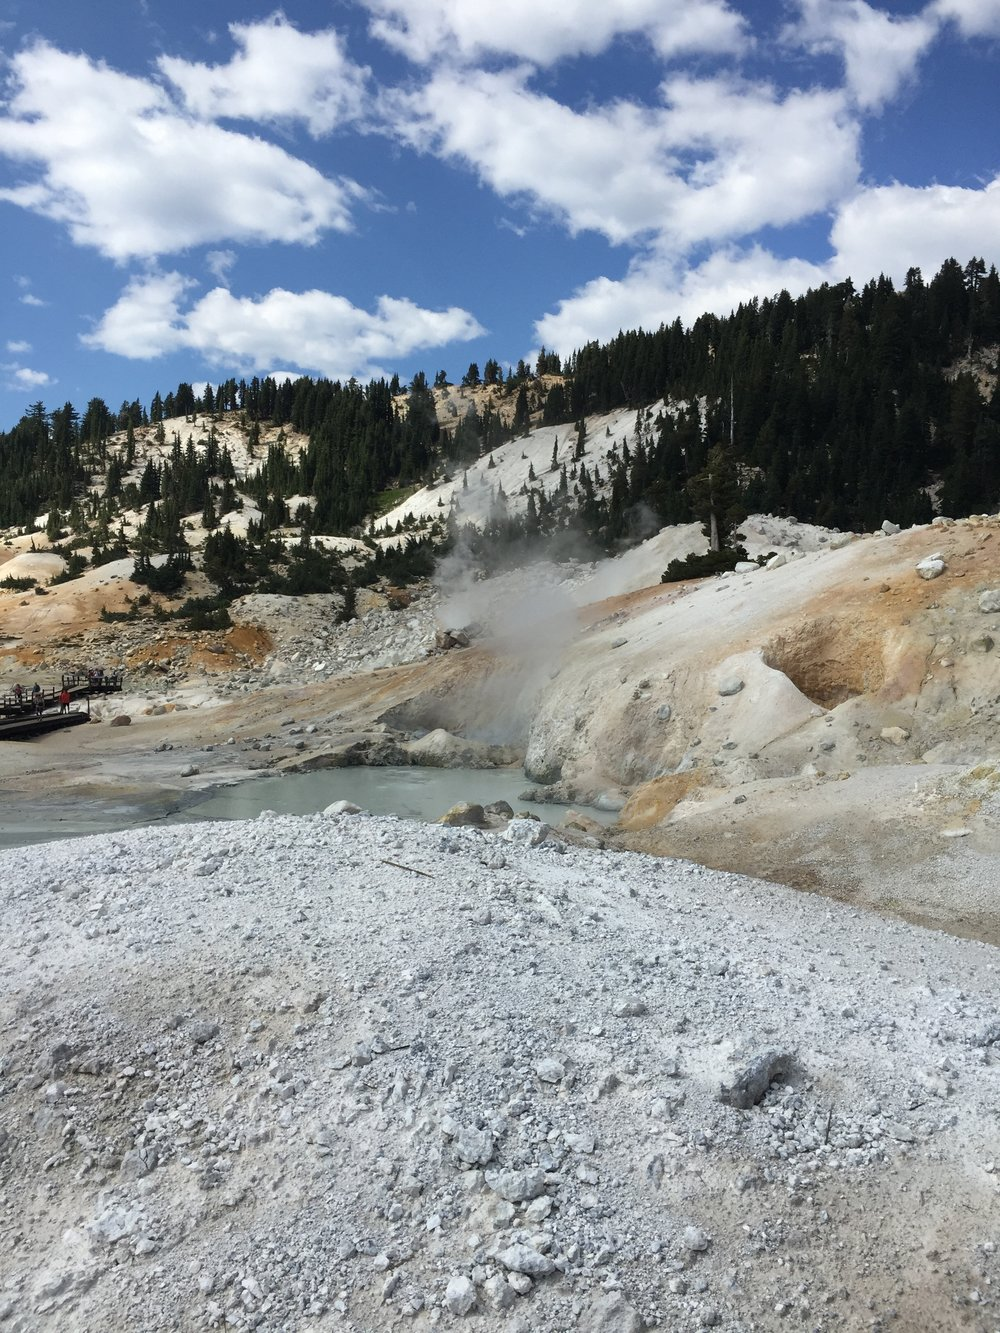 Once we had exhausted ourselves climbing Lassen Peak, we went to check out Bumpass Hell, which is an area of hydrothermal sites and acres of bubbling mud pots, very similar to parts of Yosemite. The park is full of many trails (all ranging in difficulty) and lakes, it's quiet and beautiful especially this time of year. Parts of the northern trails also link up to the Pacific Crest Trail.     Next stop Brice Station Vineyard and San Francisco!